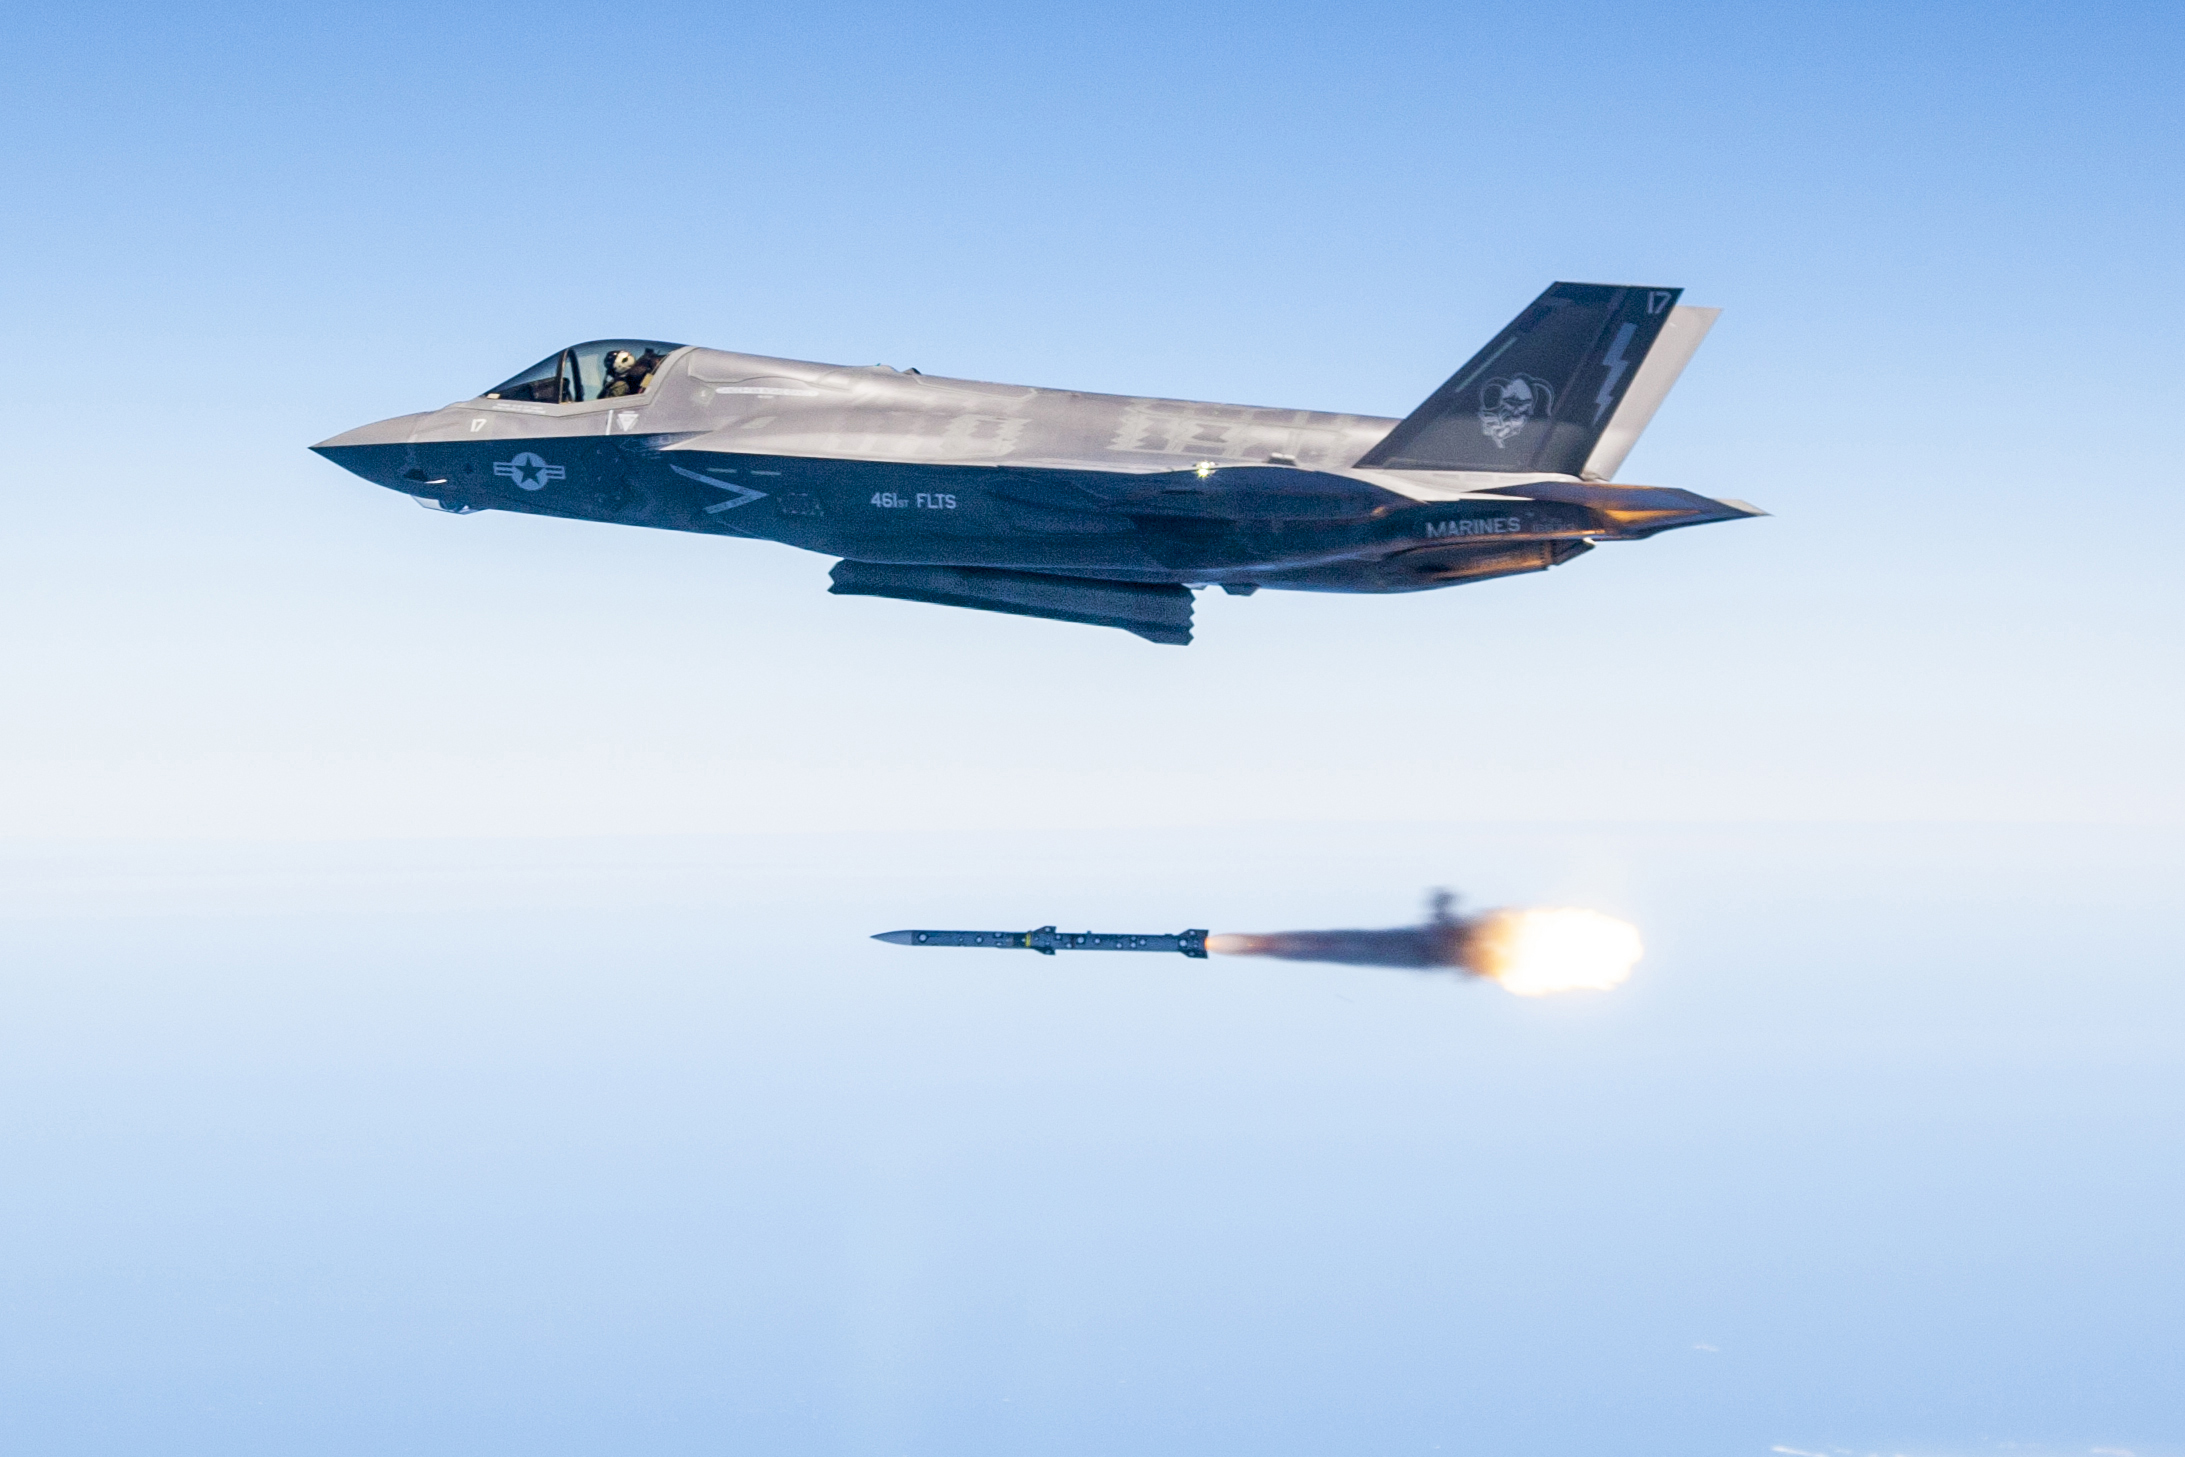 eb64778d4ae9 Douglas Rosenstock fires an AIM-120 missile from an F-35 during. PHOTO  DETAILS   DOWNLOAD HI-RES 1 of 1